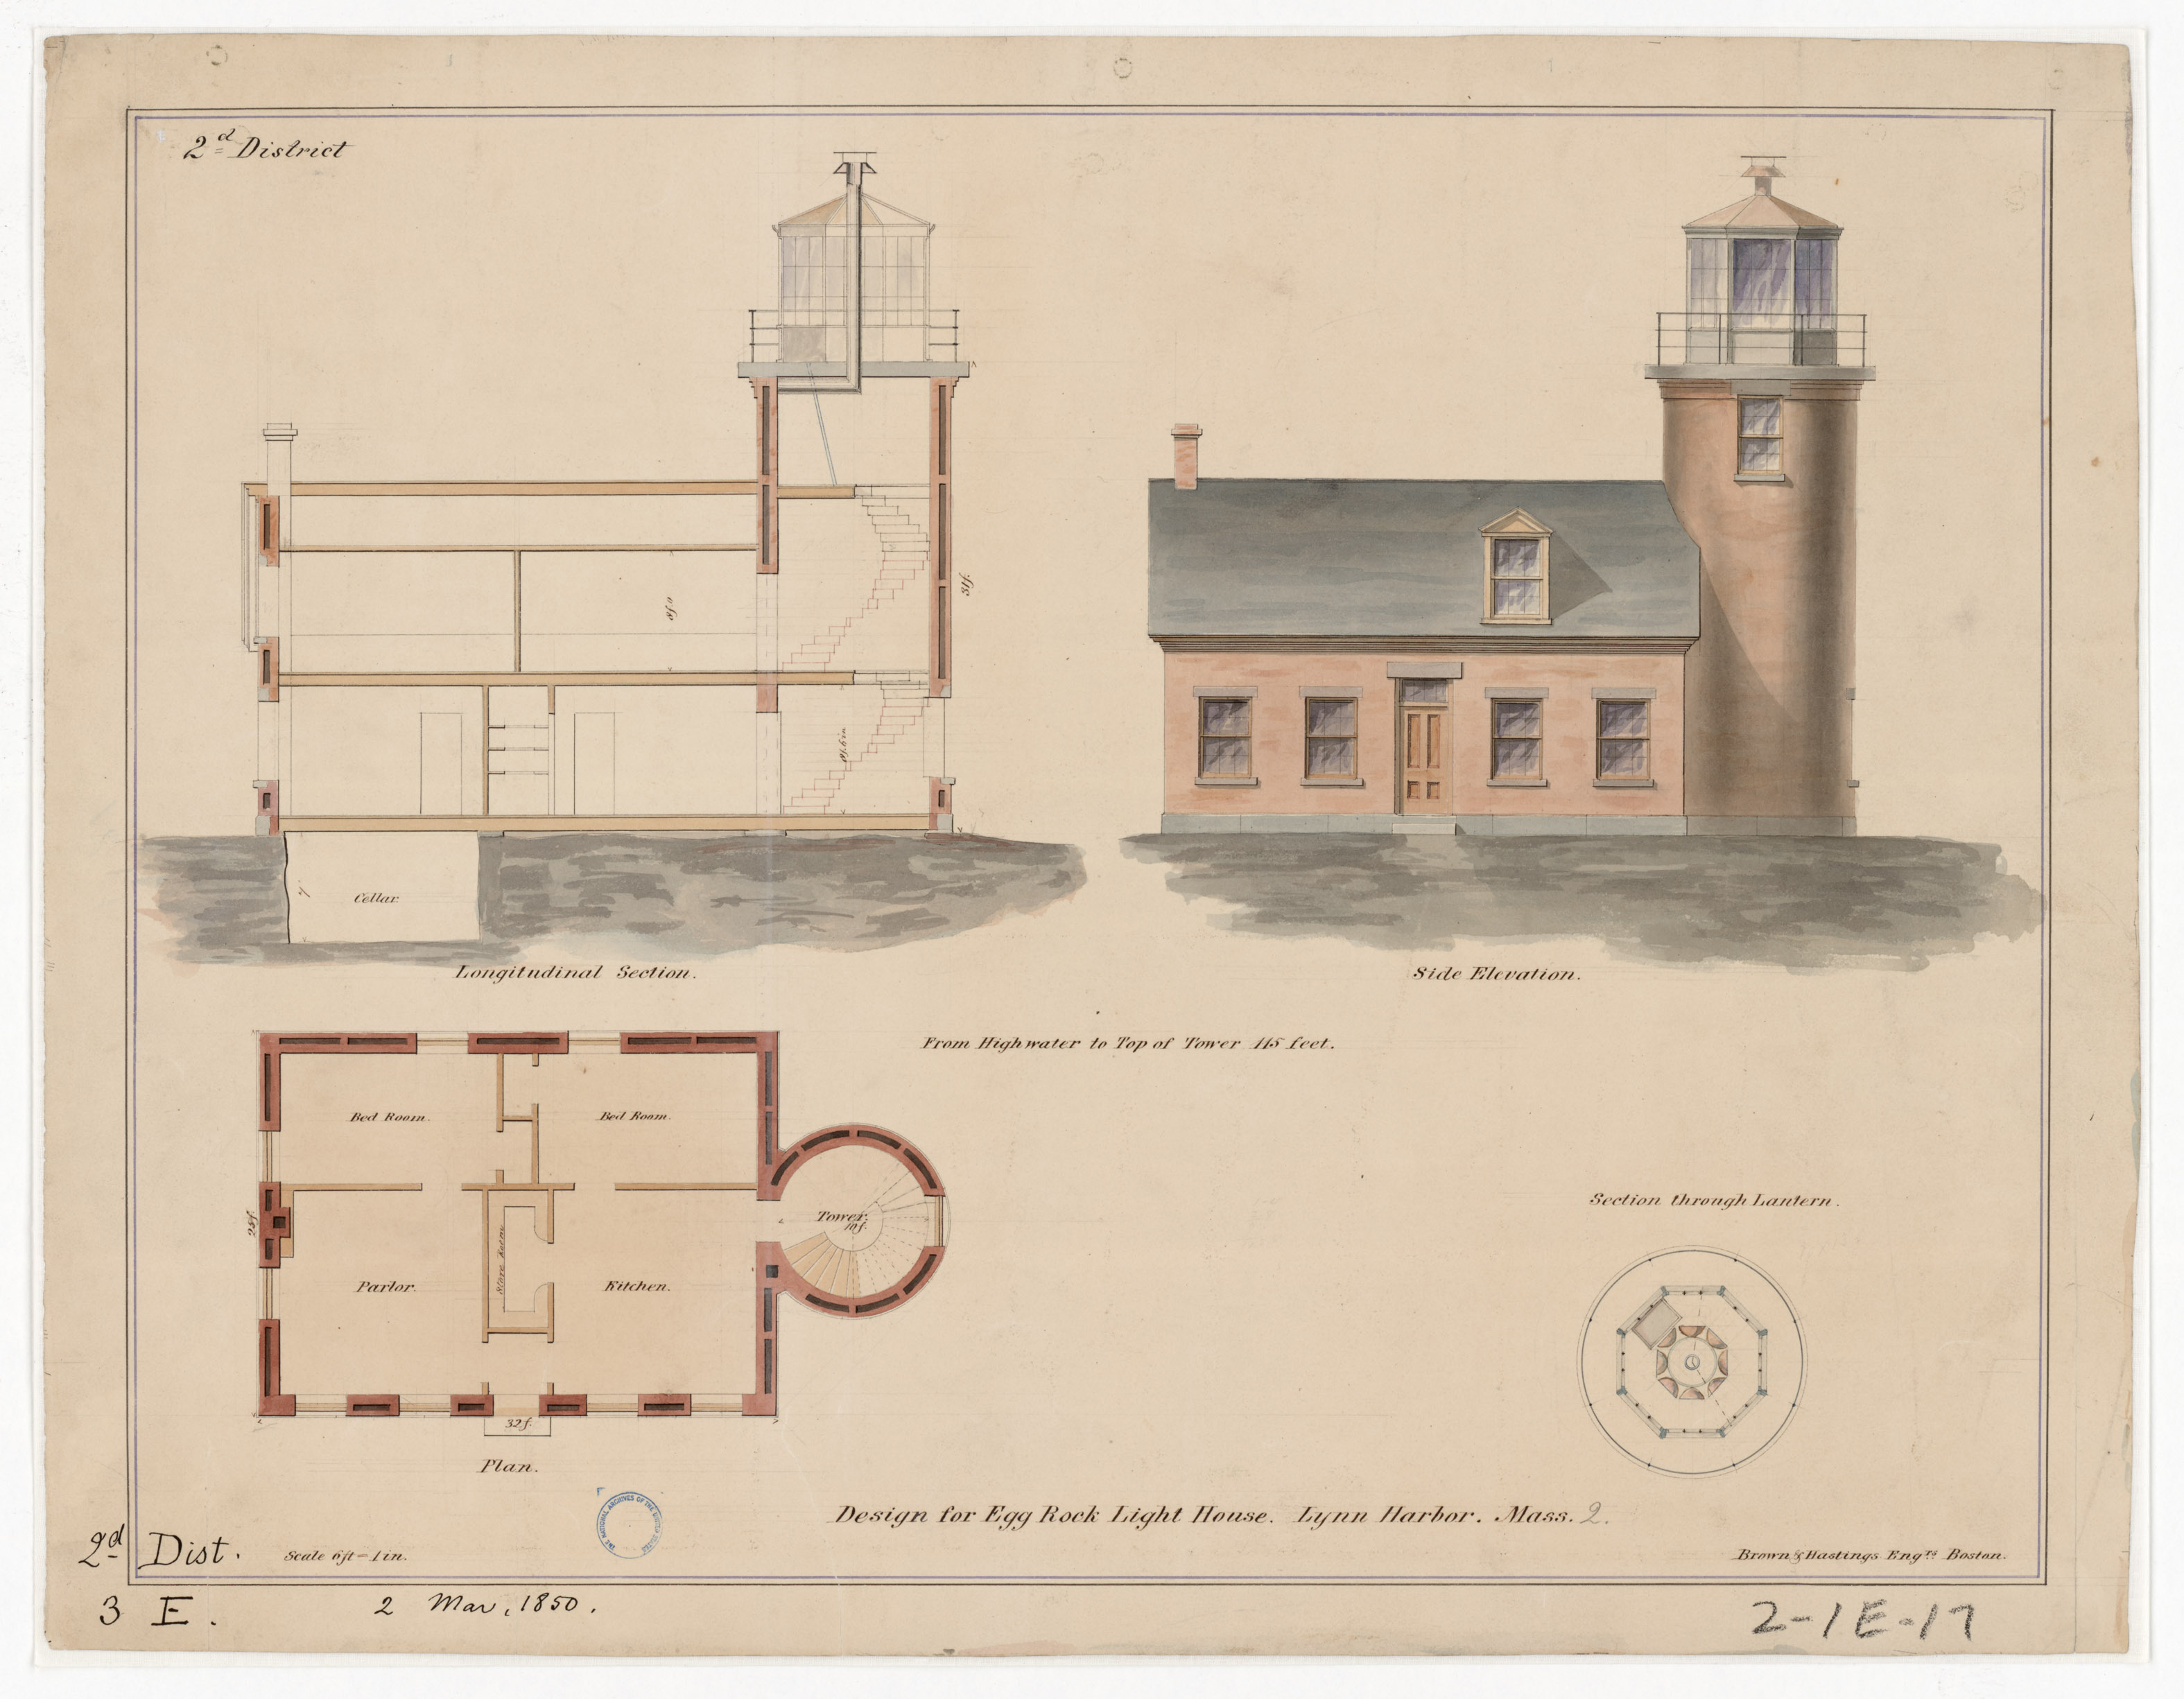 Section, Elevation and Plan Drawing for the Lighthouse at Egg Rock, Massachusetts